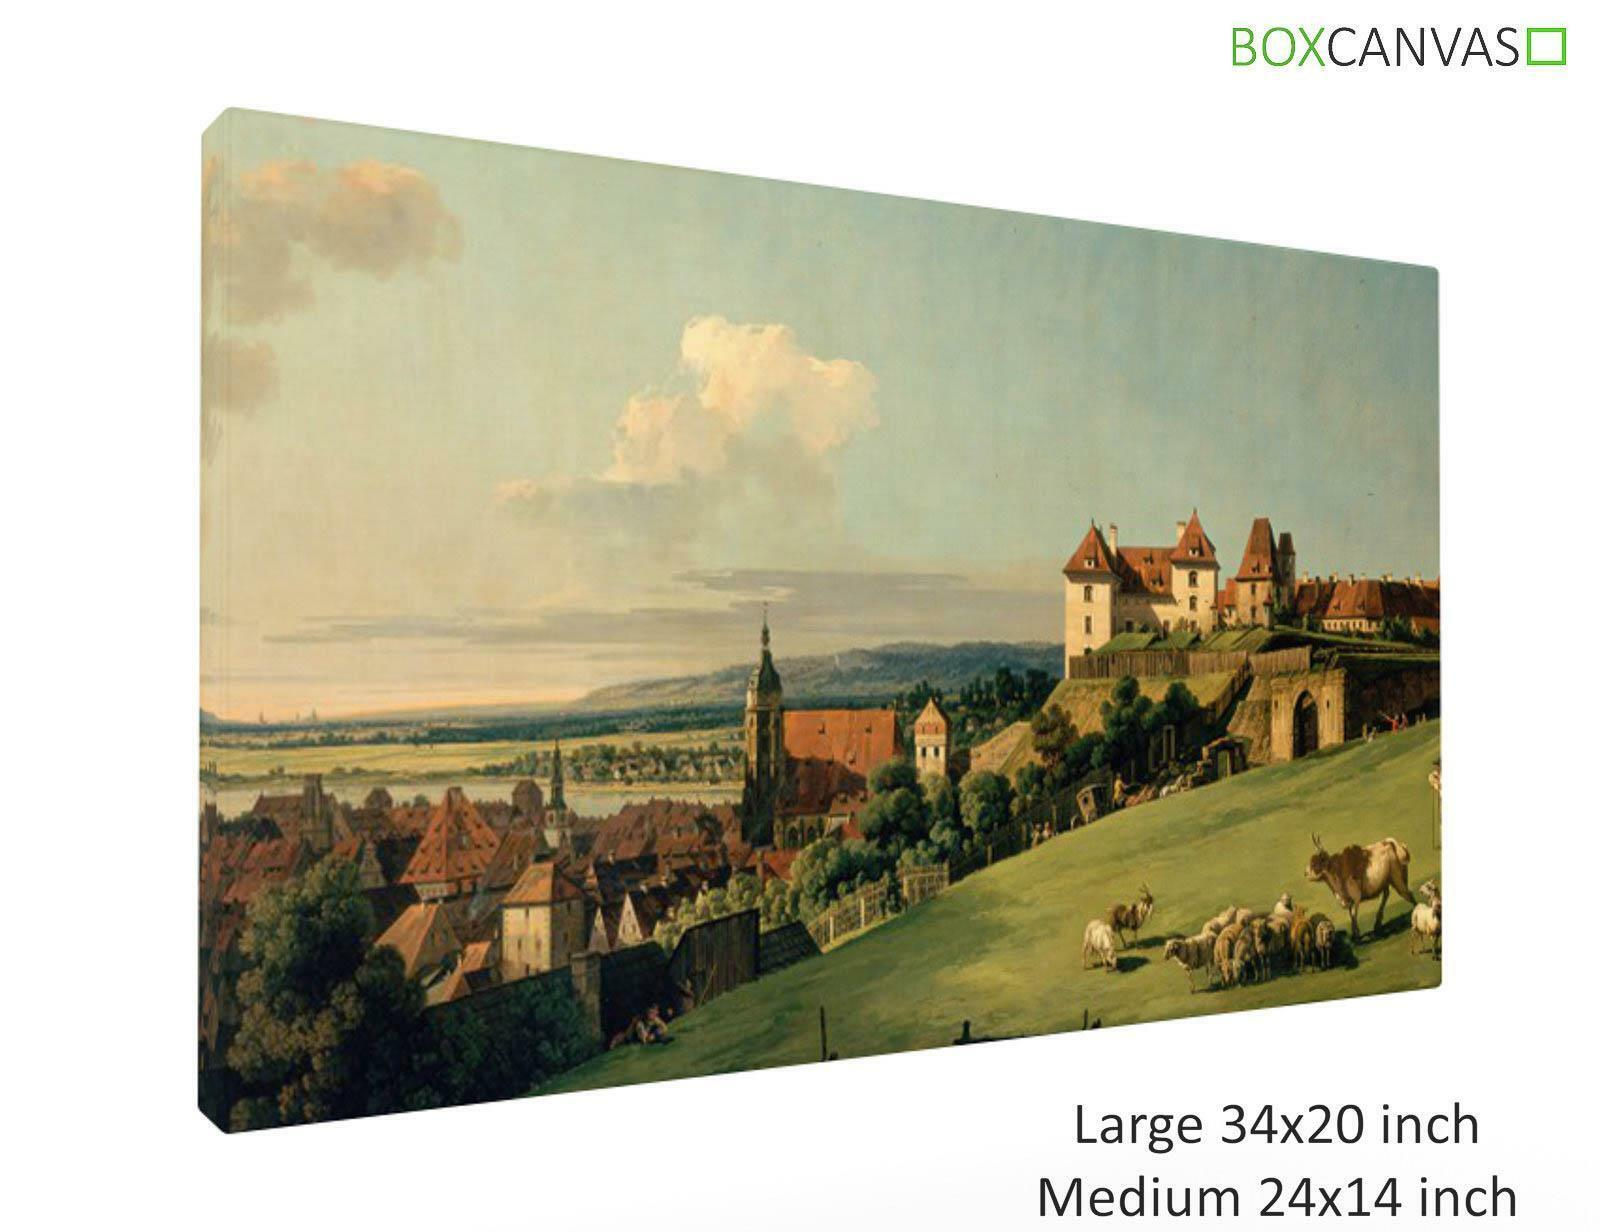 Canvas Canvas Canvas Wall Art Bernardo YC 5 69332d